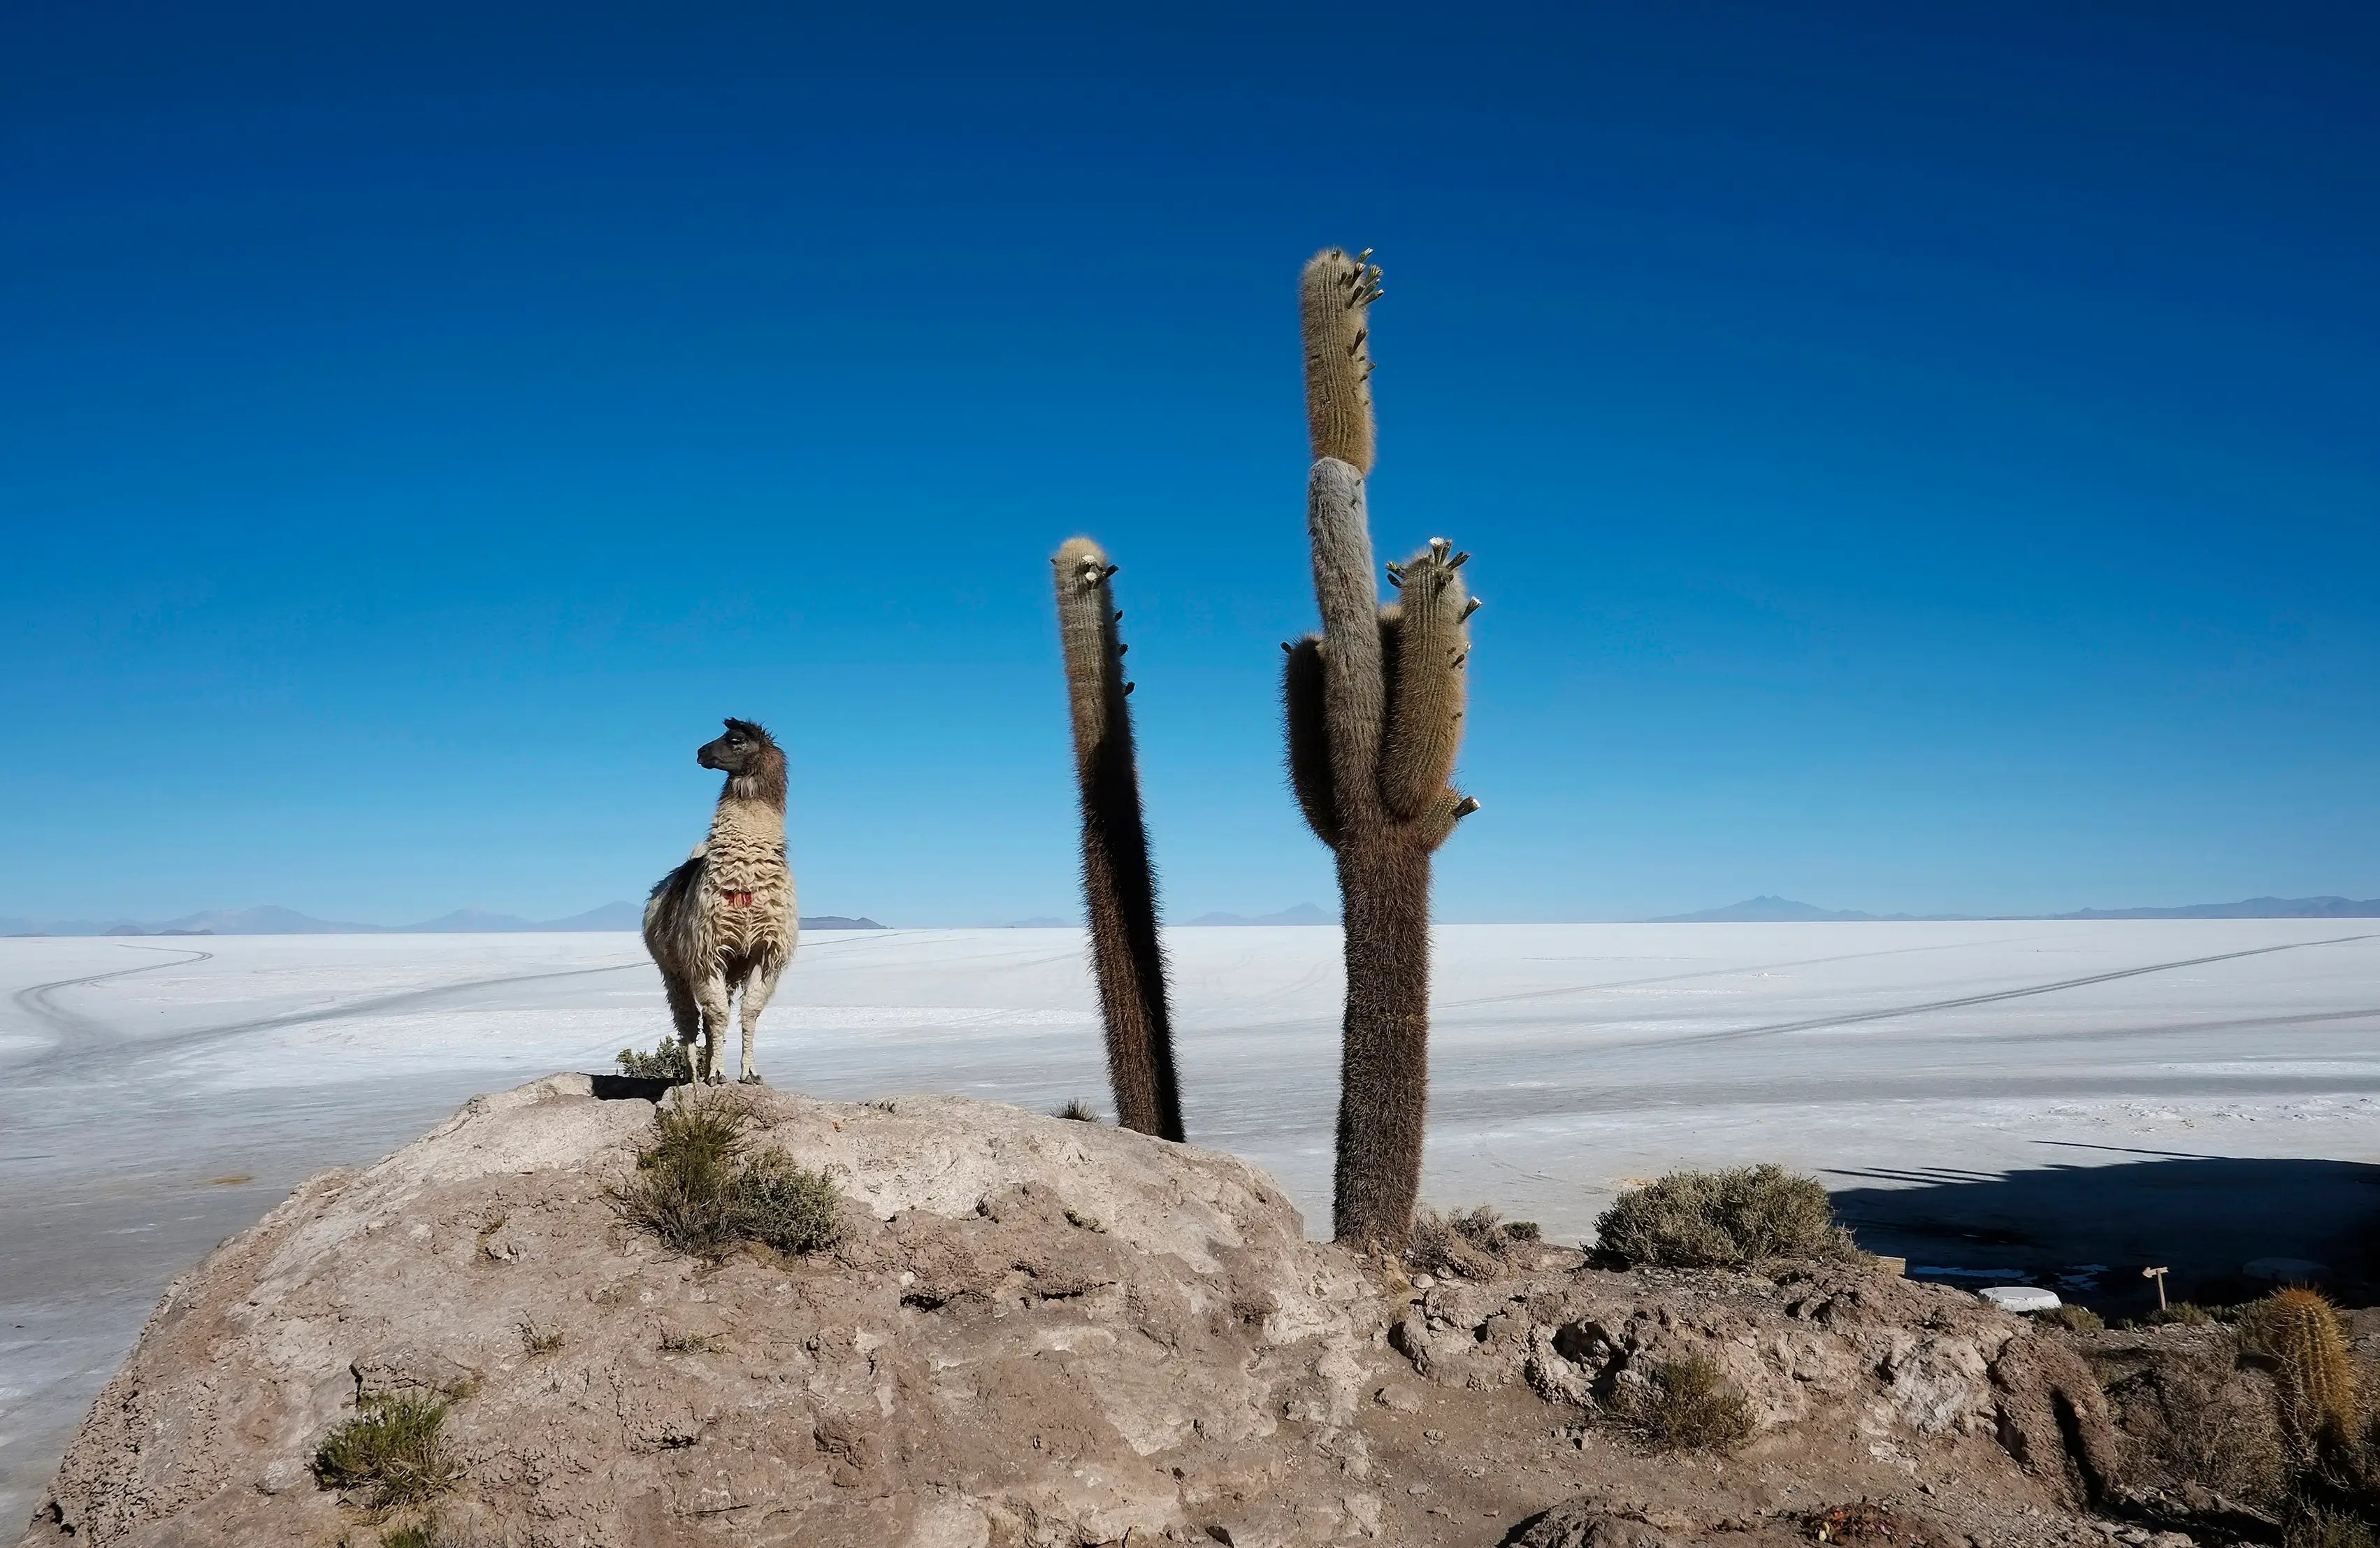 A llama stands next to a cactus growing on Incahuasi Island above the Uyuni salt lake, which holds the world's largest reserve of lithium.